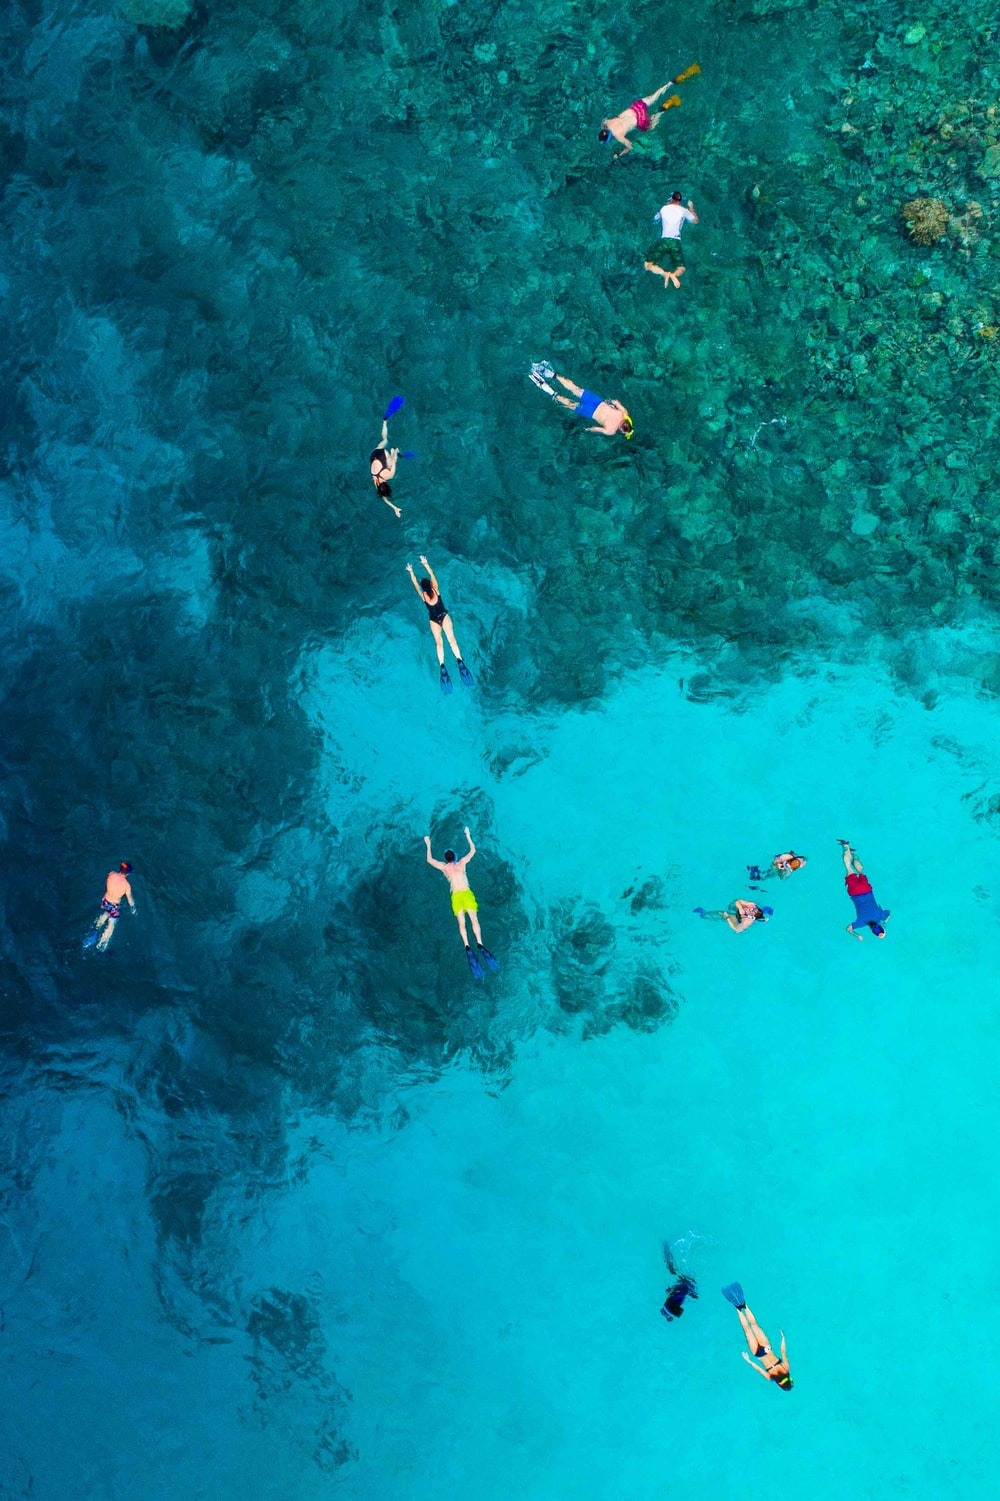 aerial view photography of people in body of water